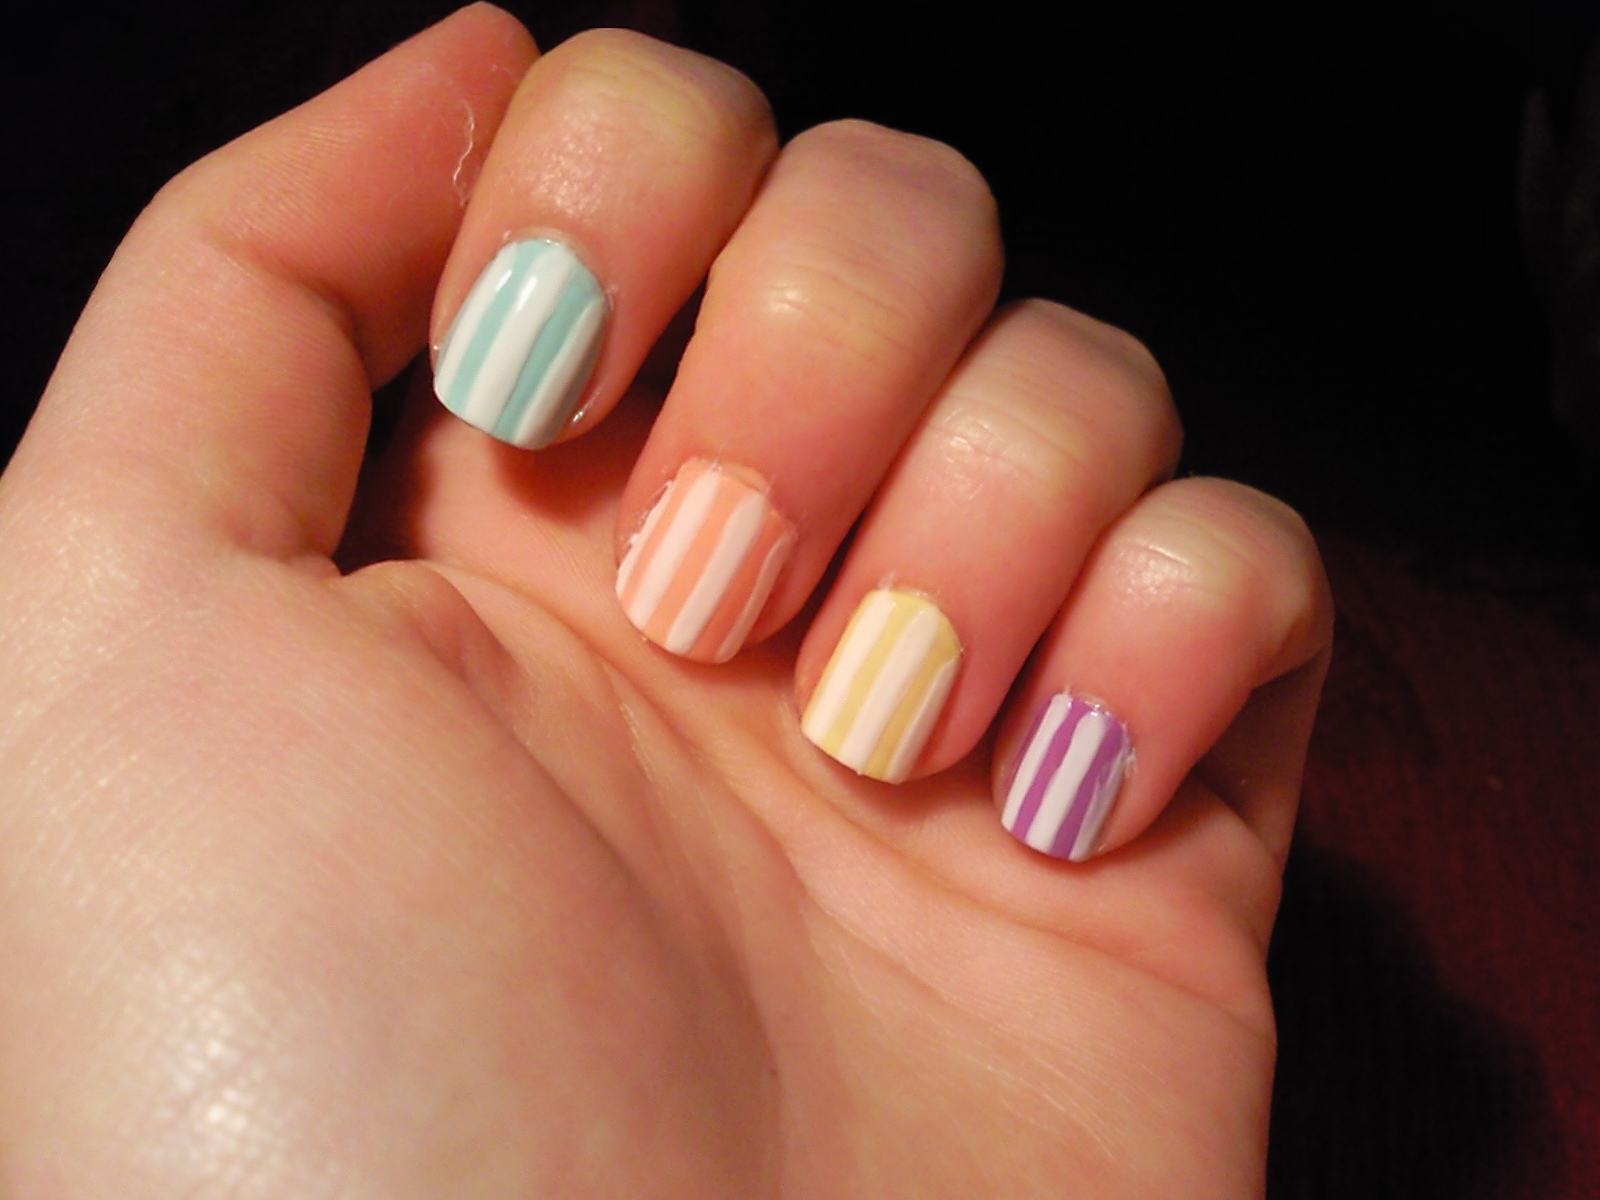 Combine pastel shades (they're super fashionable now) with white